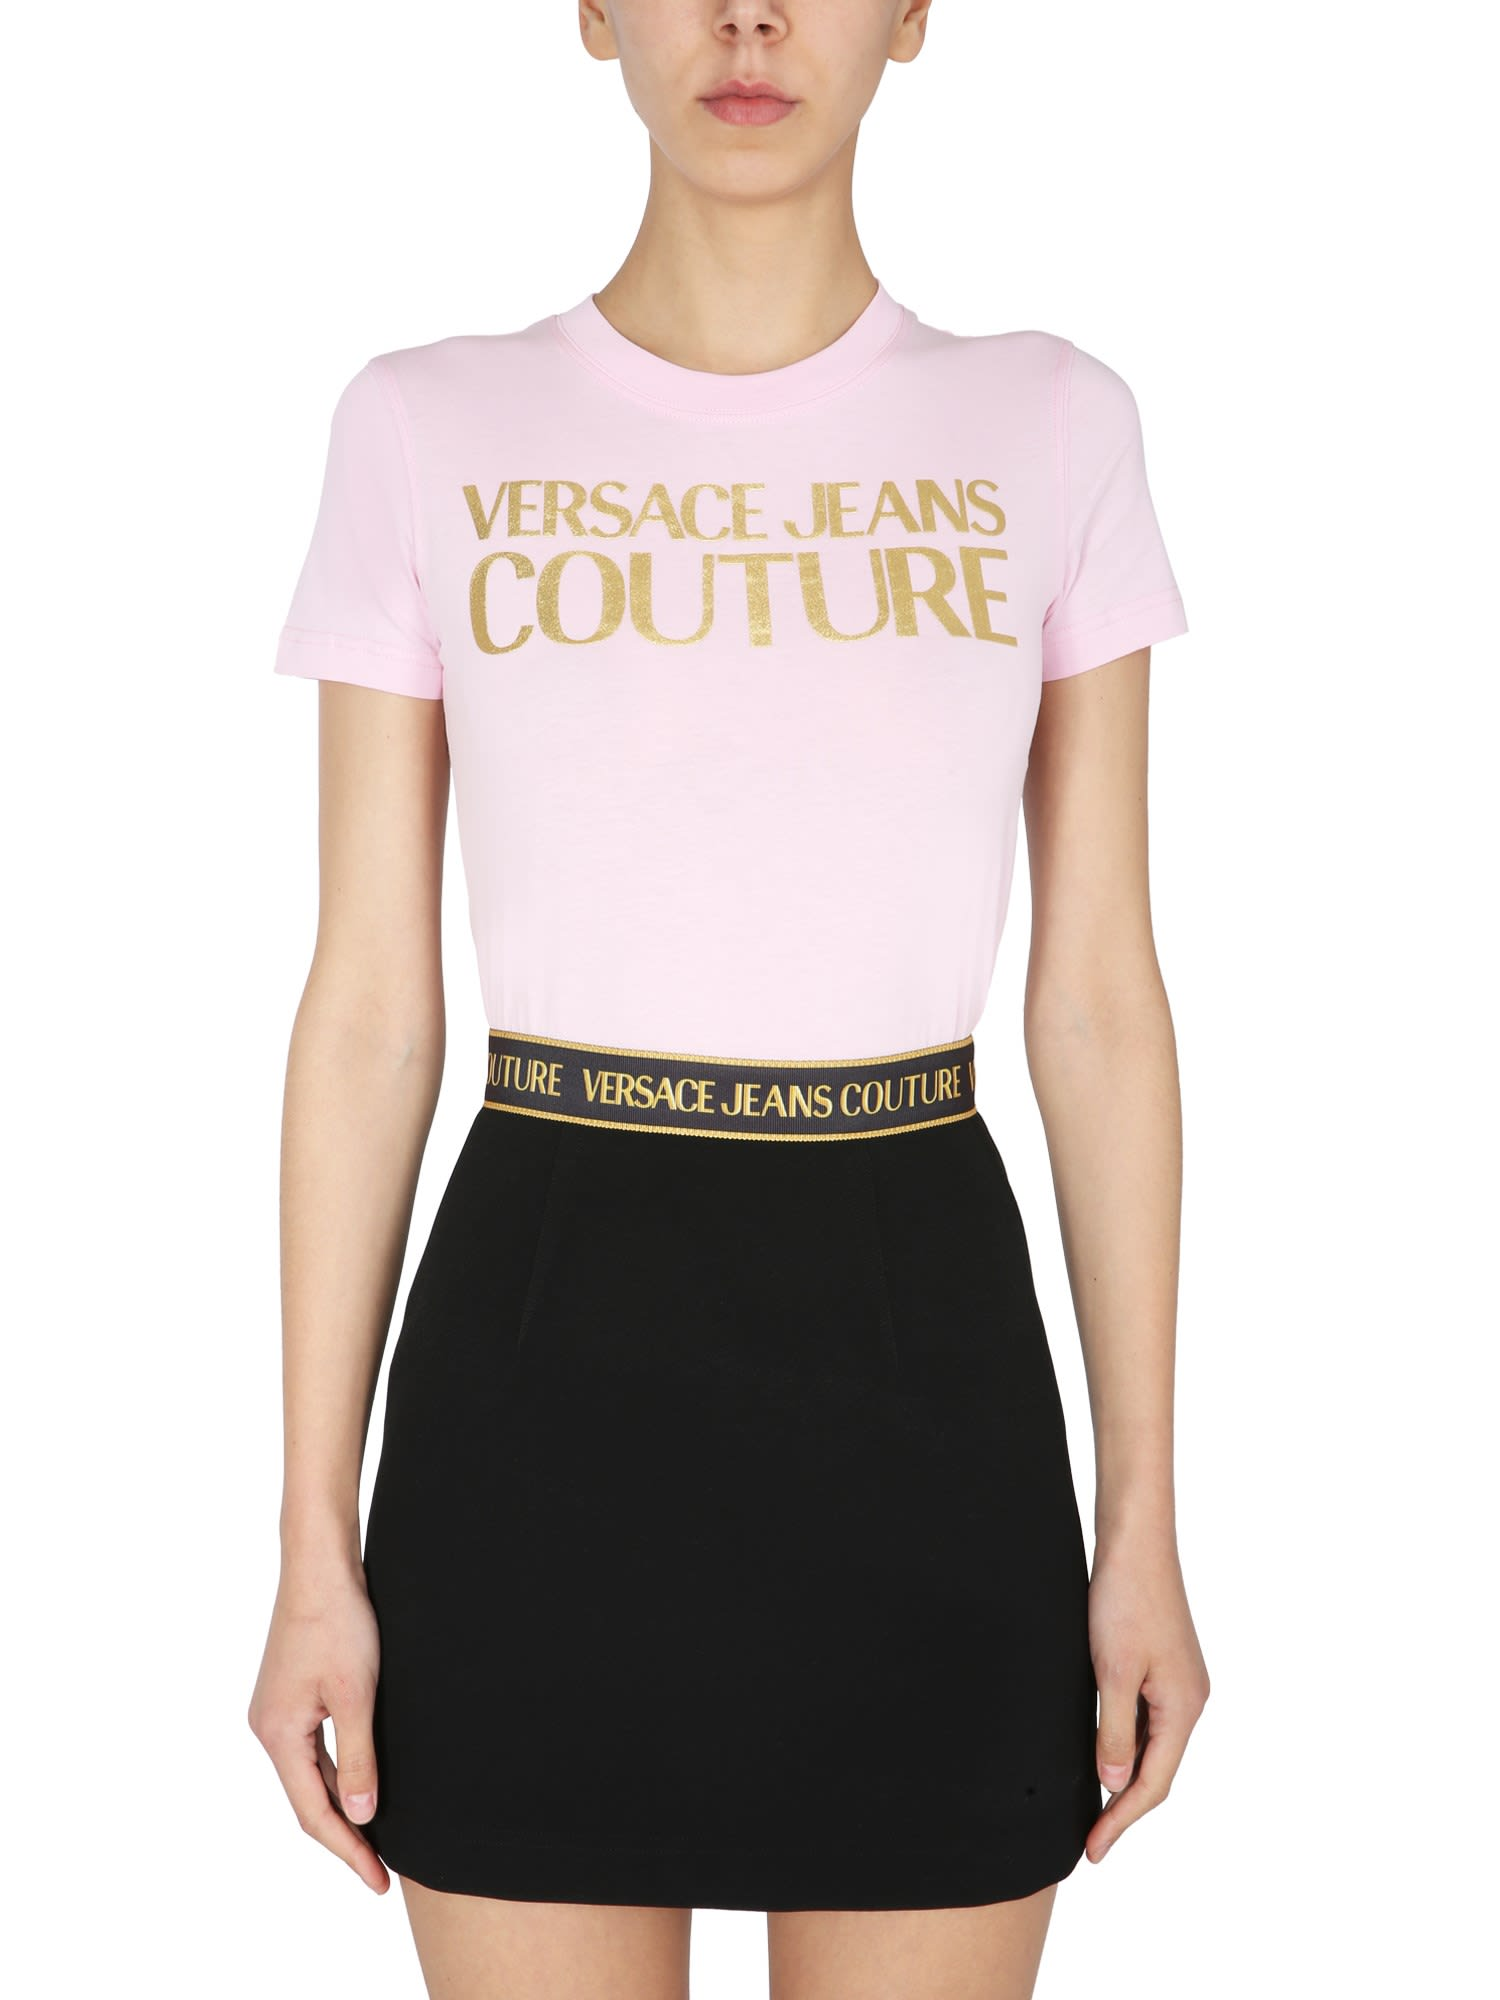 Versace Jeans Couture T-SHIRT WITH METALLIC LOGO